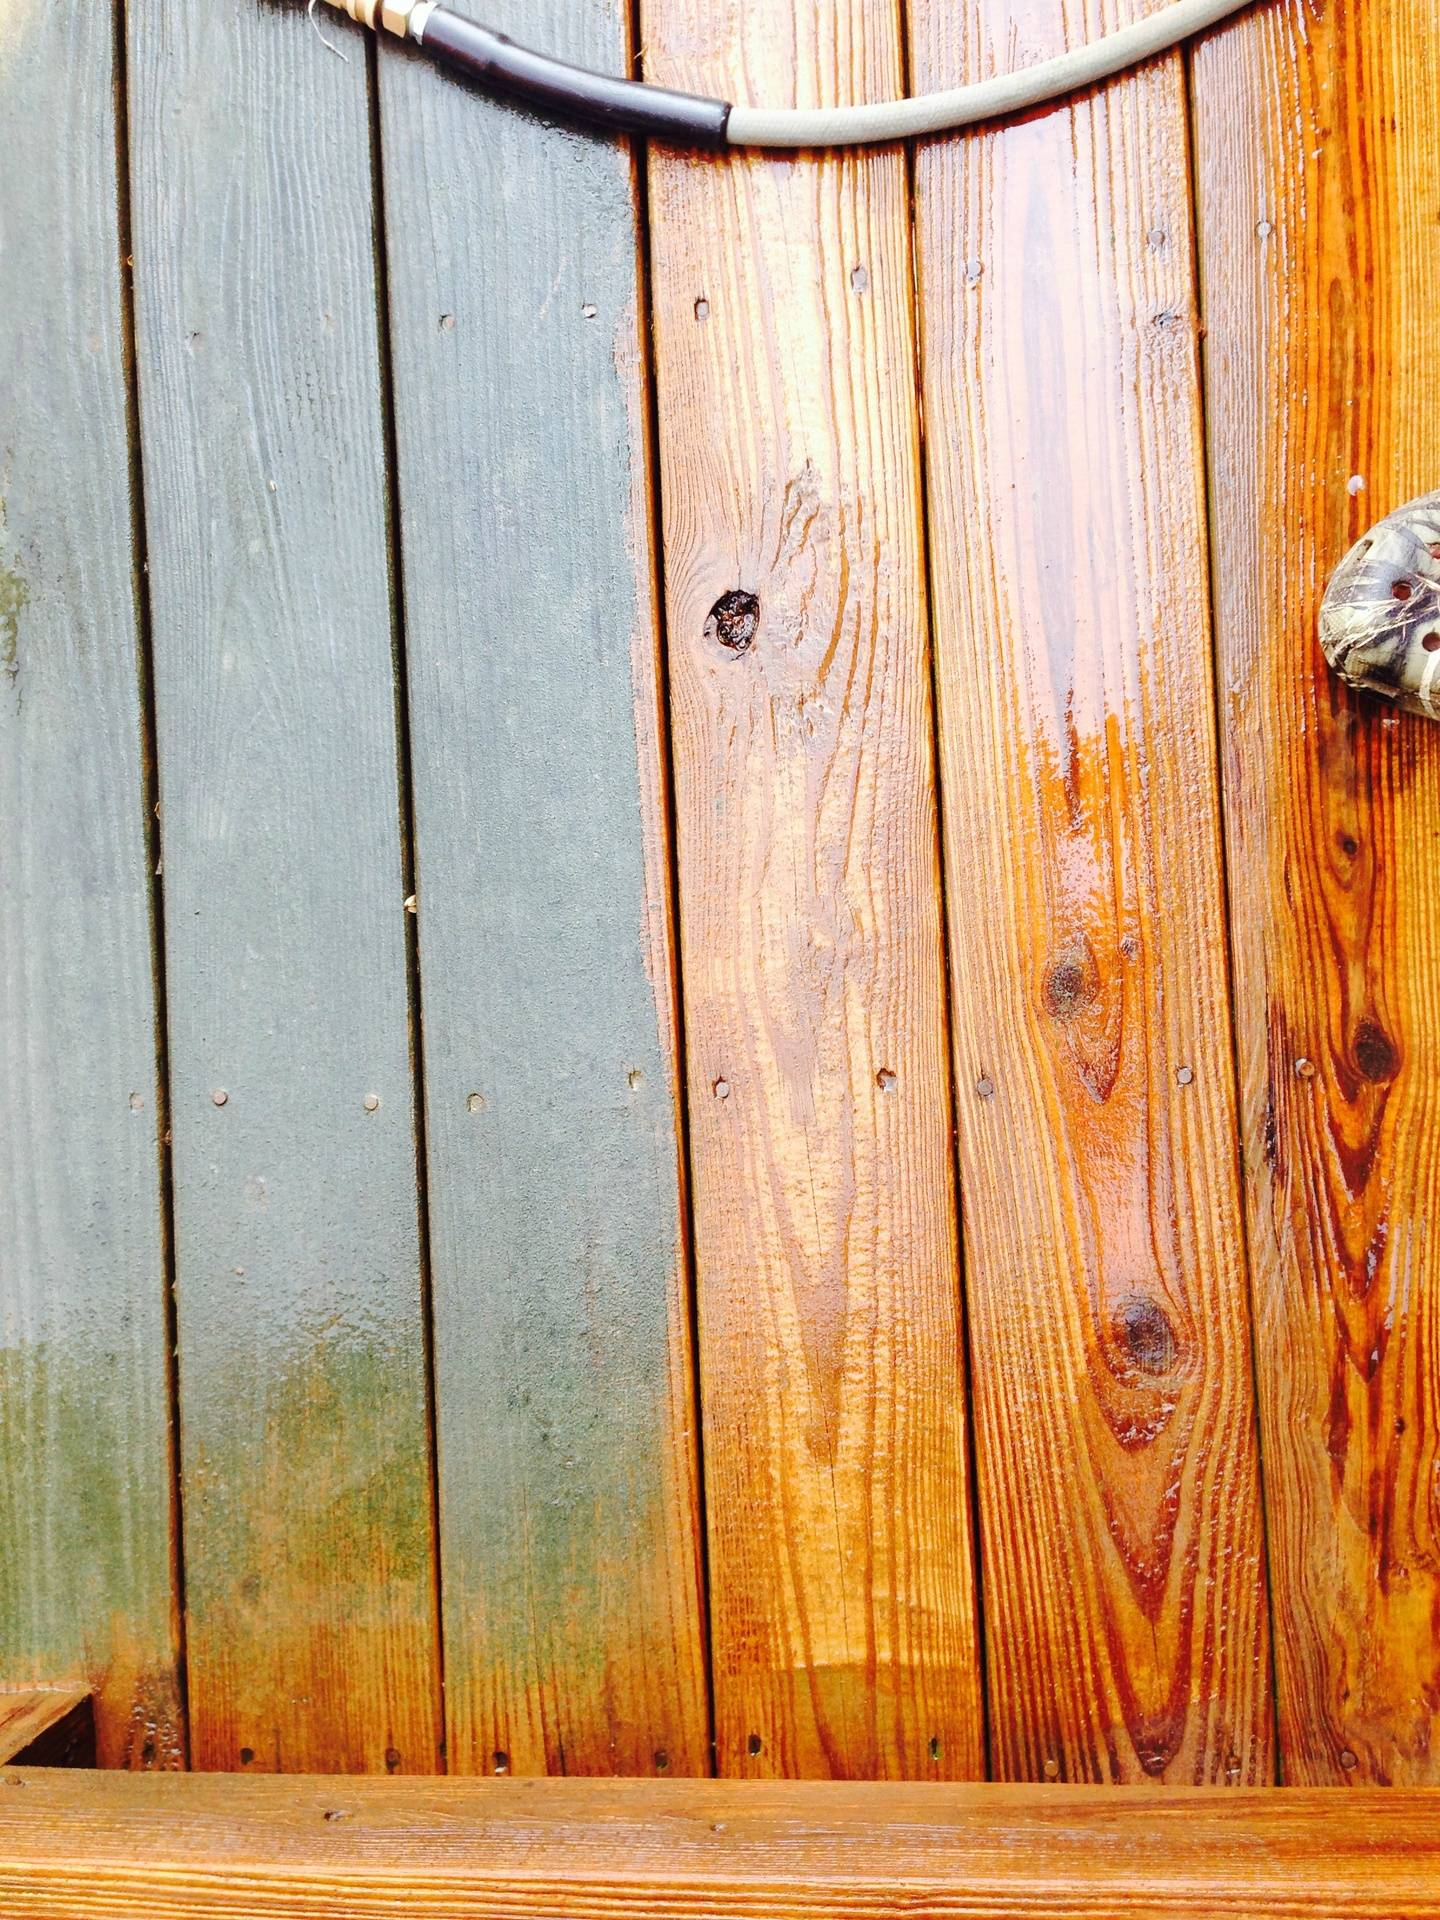 A dirty deck gets a facelift